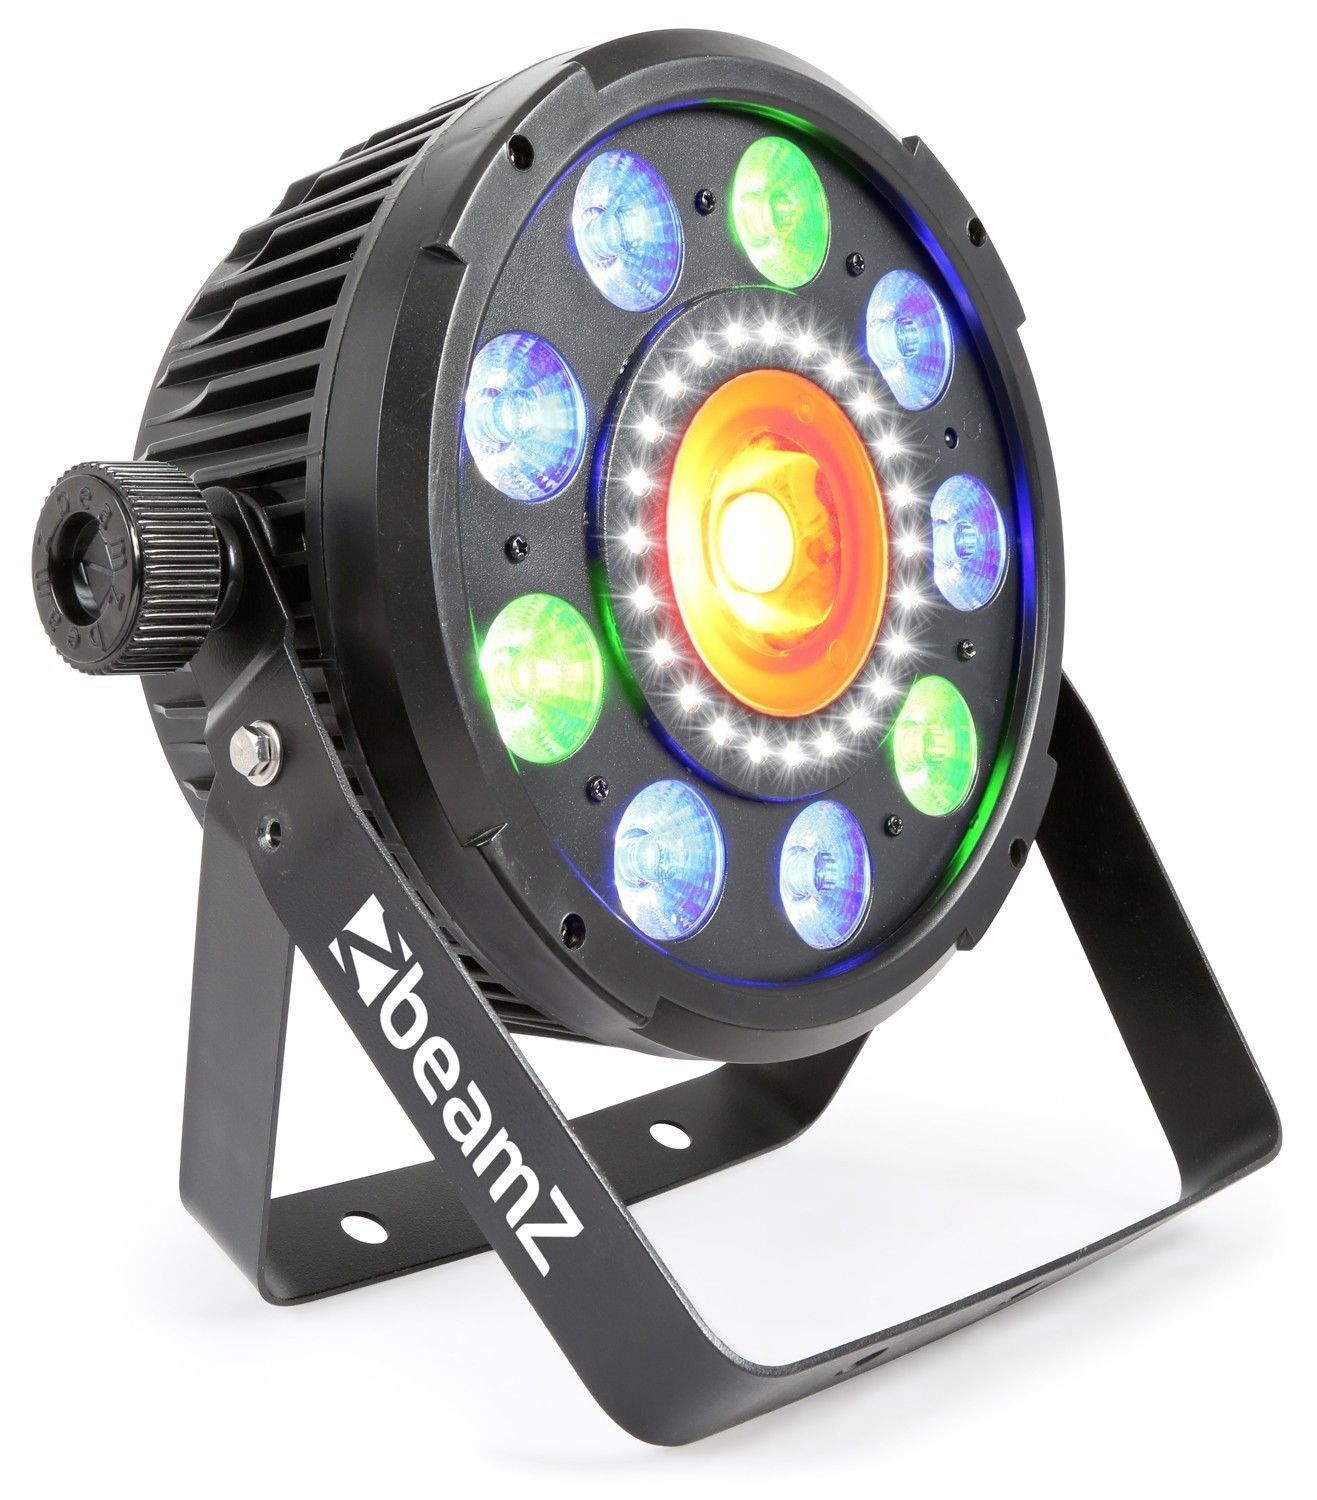 BeamZ BX96 6-in-1 LED PAR met 20W COB LED en 24 LED's stroboscoop